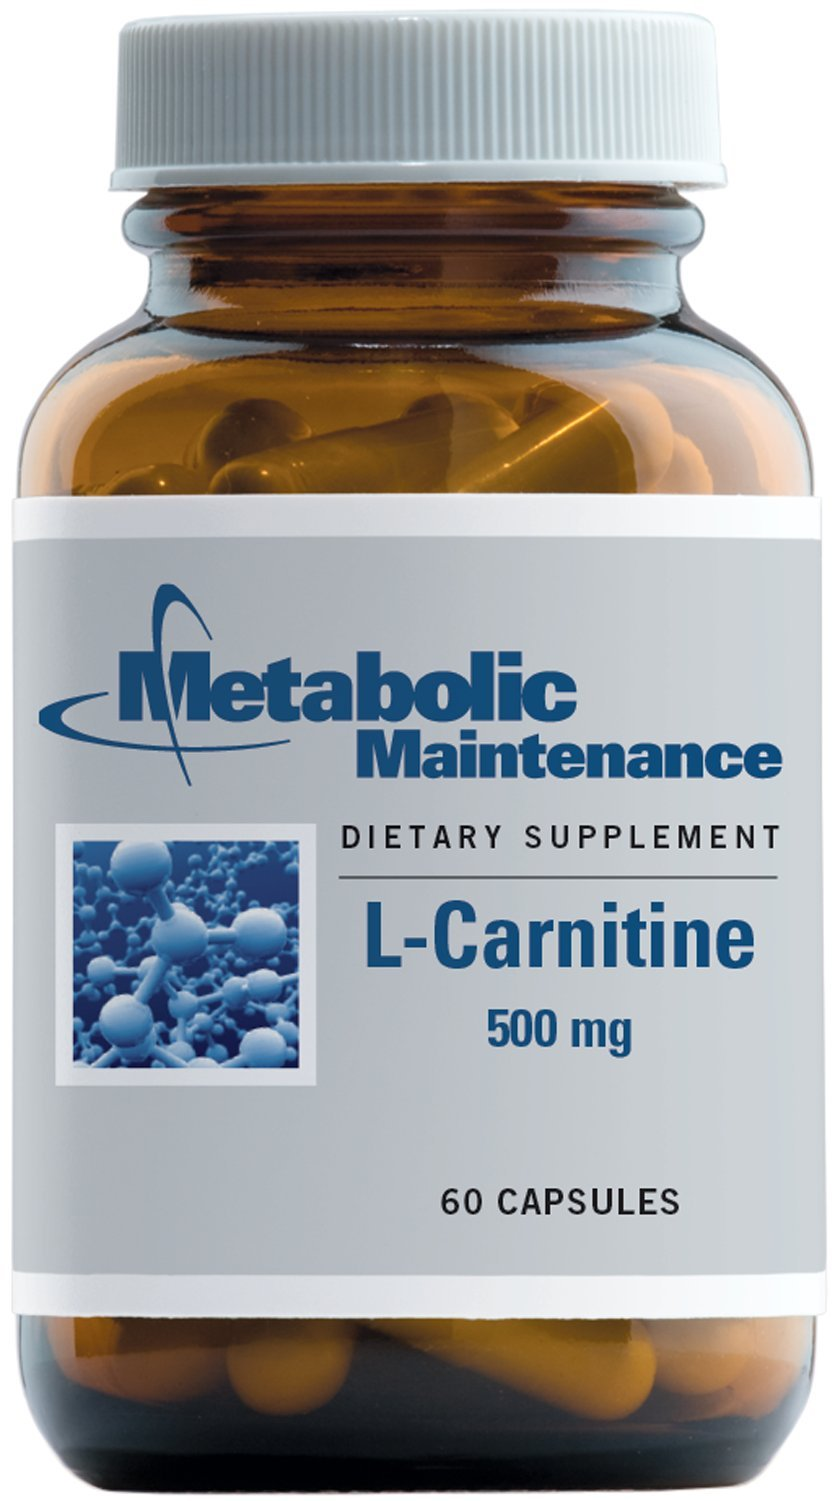 Metabolic Maintenance - L-Carnitine - 500 mg, Performance + Weight Control Support, 60 Capsules